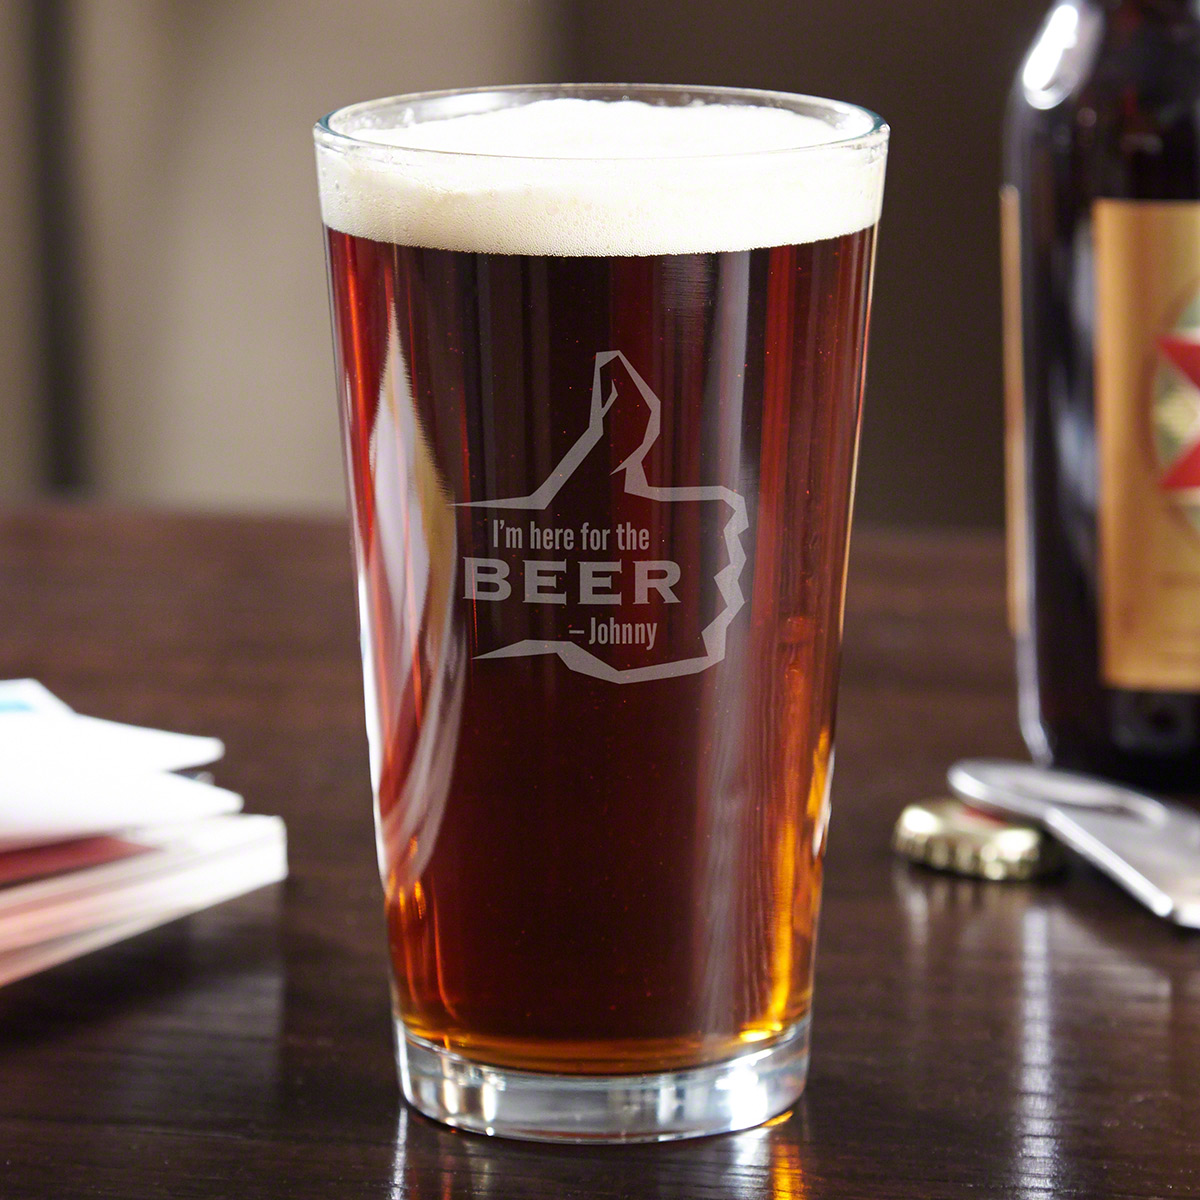 Here for the Beer Engraved Pint Glass